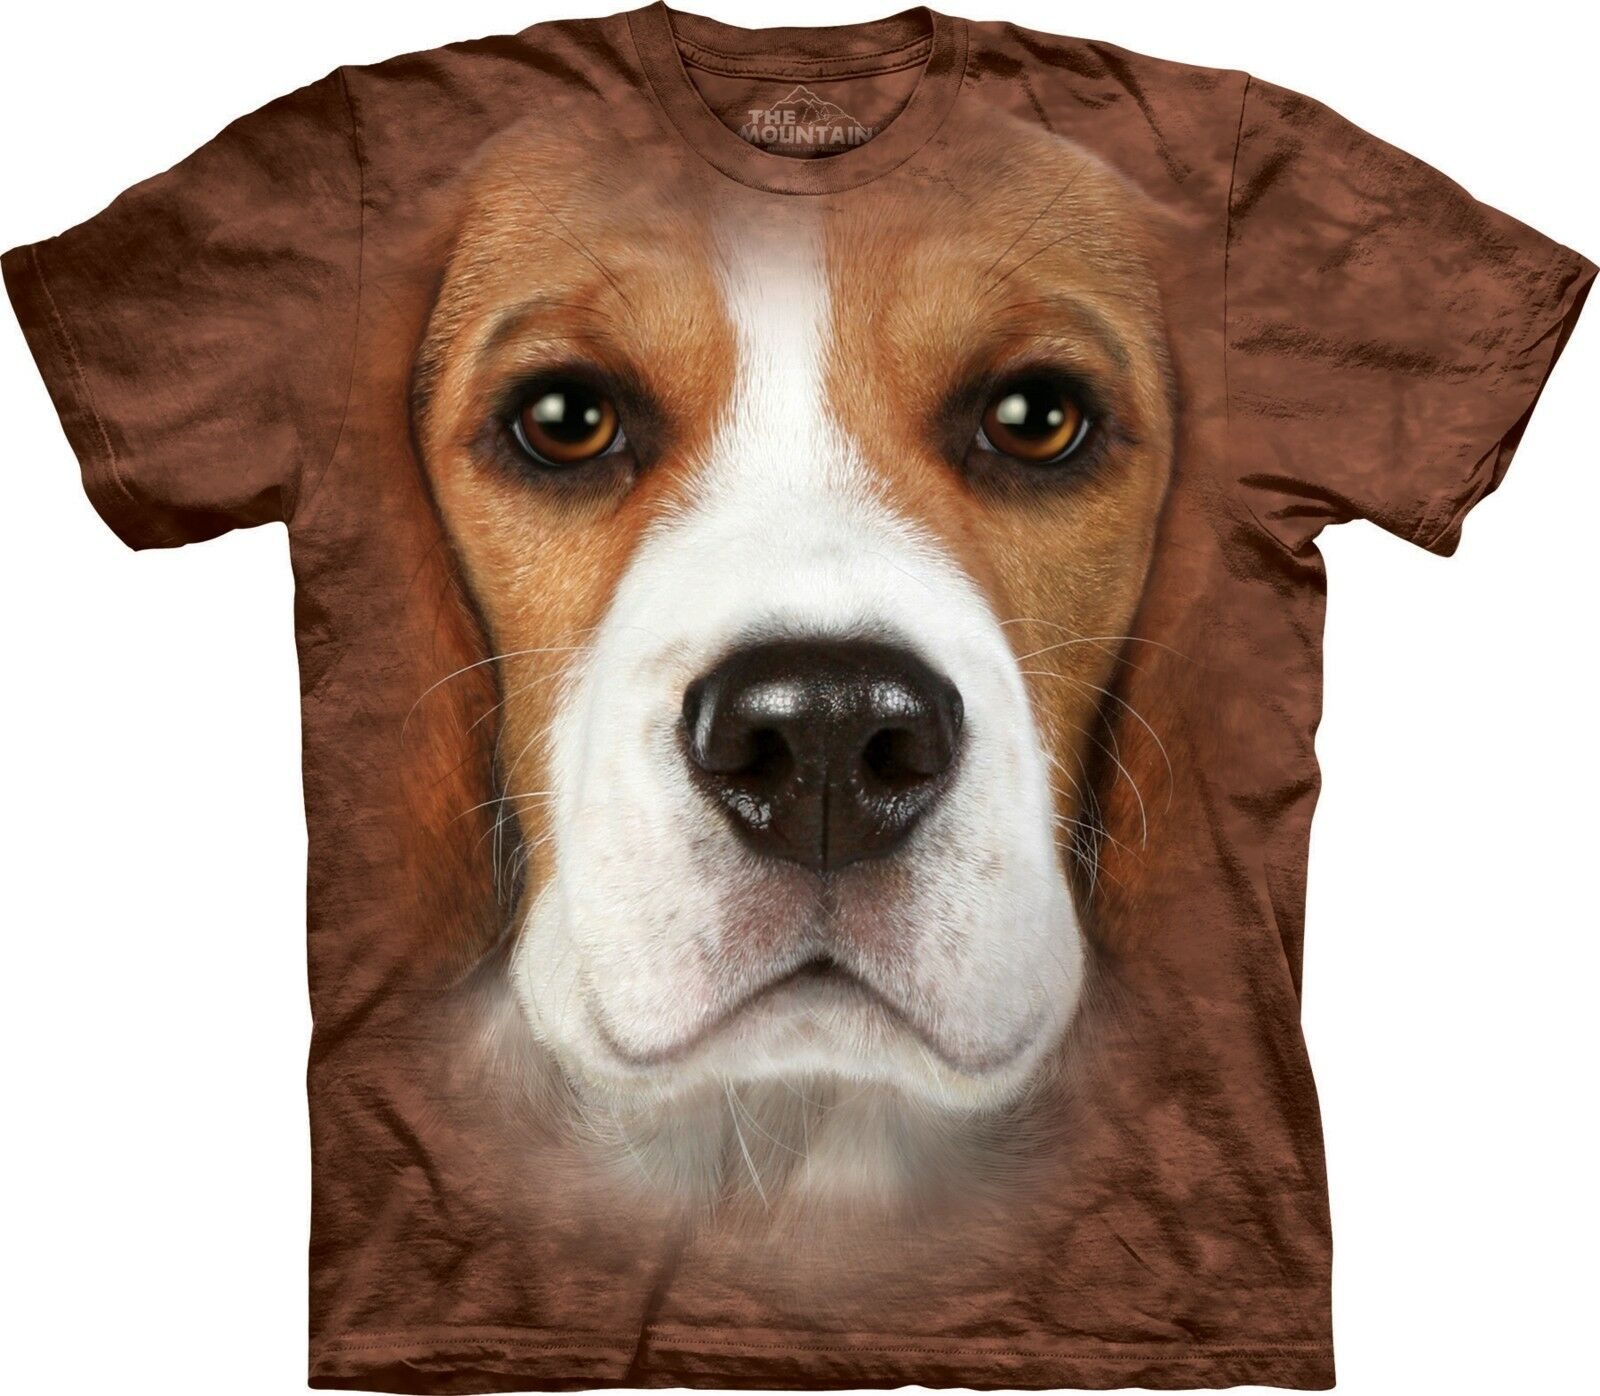 Beagle Face Dogs T Shirt Adult Unisex The Mountain